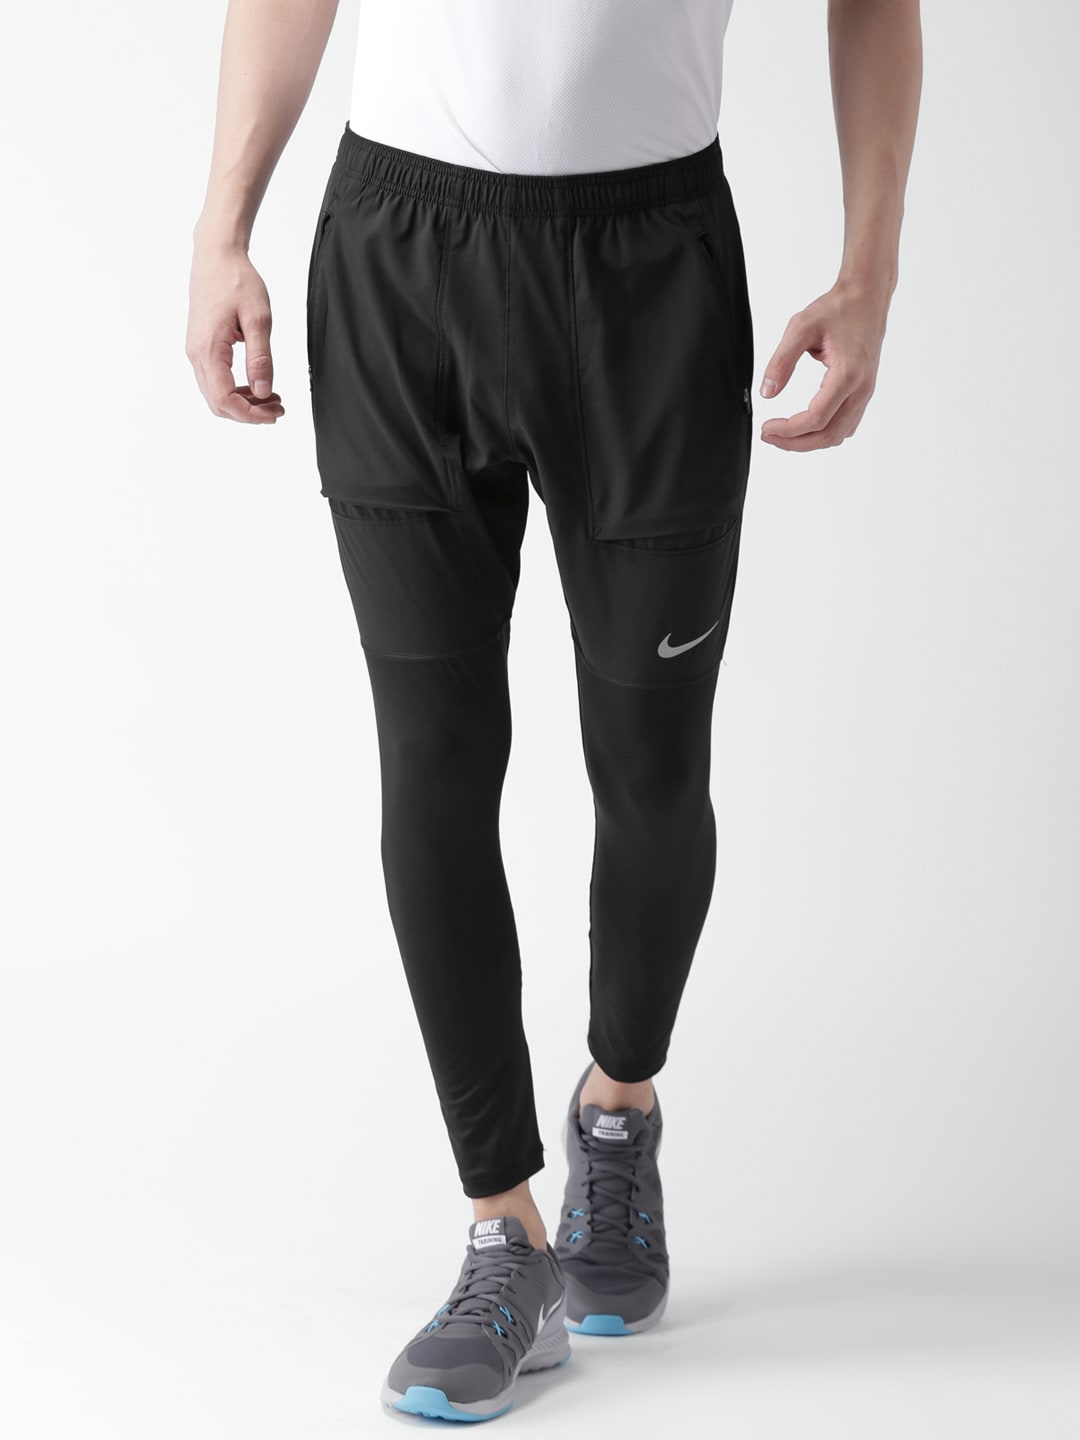 61e13f7c1963 Nike Slim Fits Track Pants - Buy Nike Slim Fits Track Pants online in India